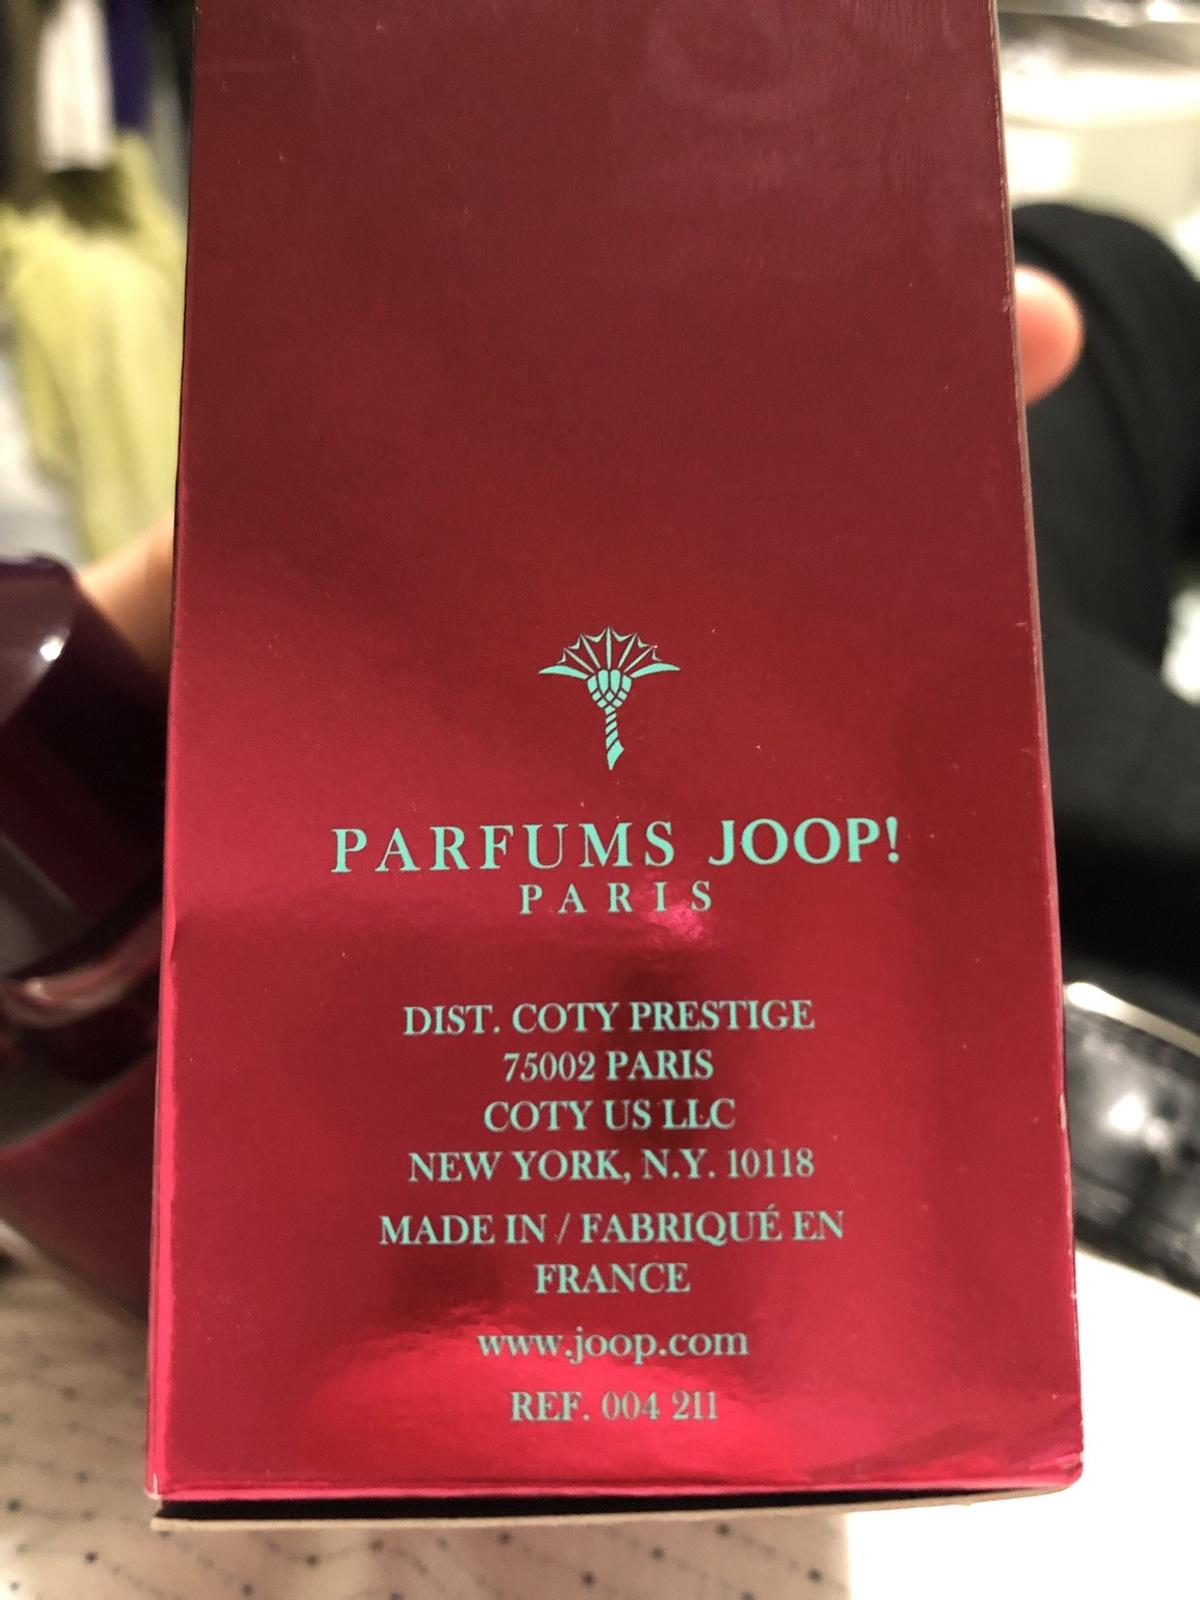 Joop Homme 125ml. Never used but has been opened. Unwanted Christmas gift as don't like the smell